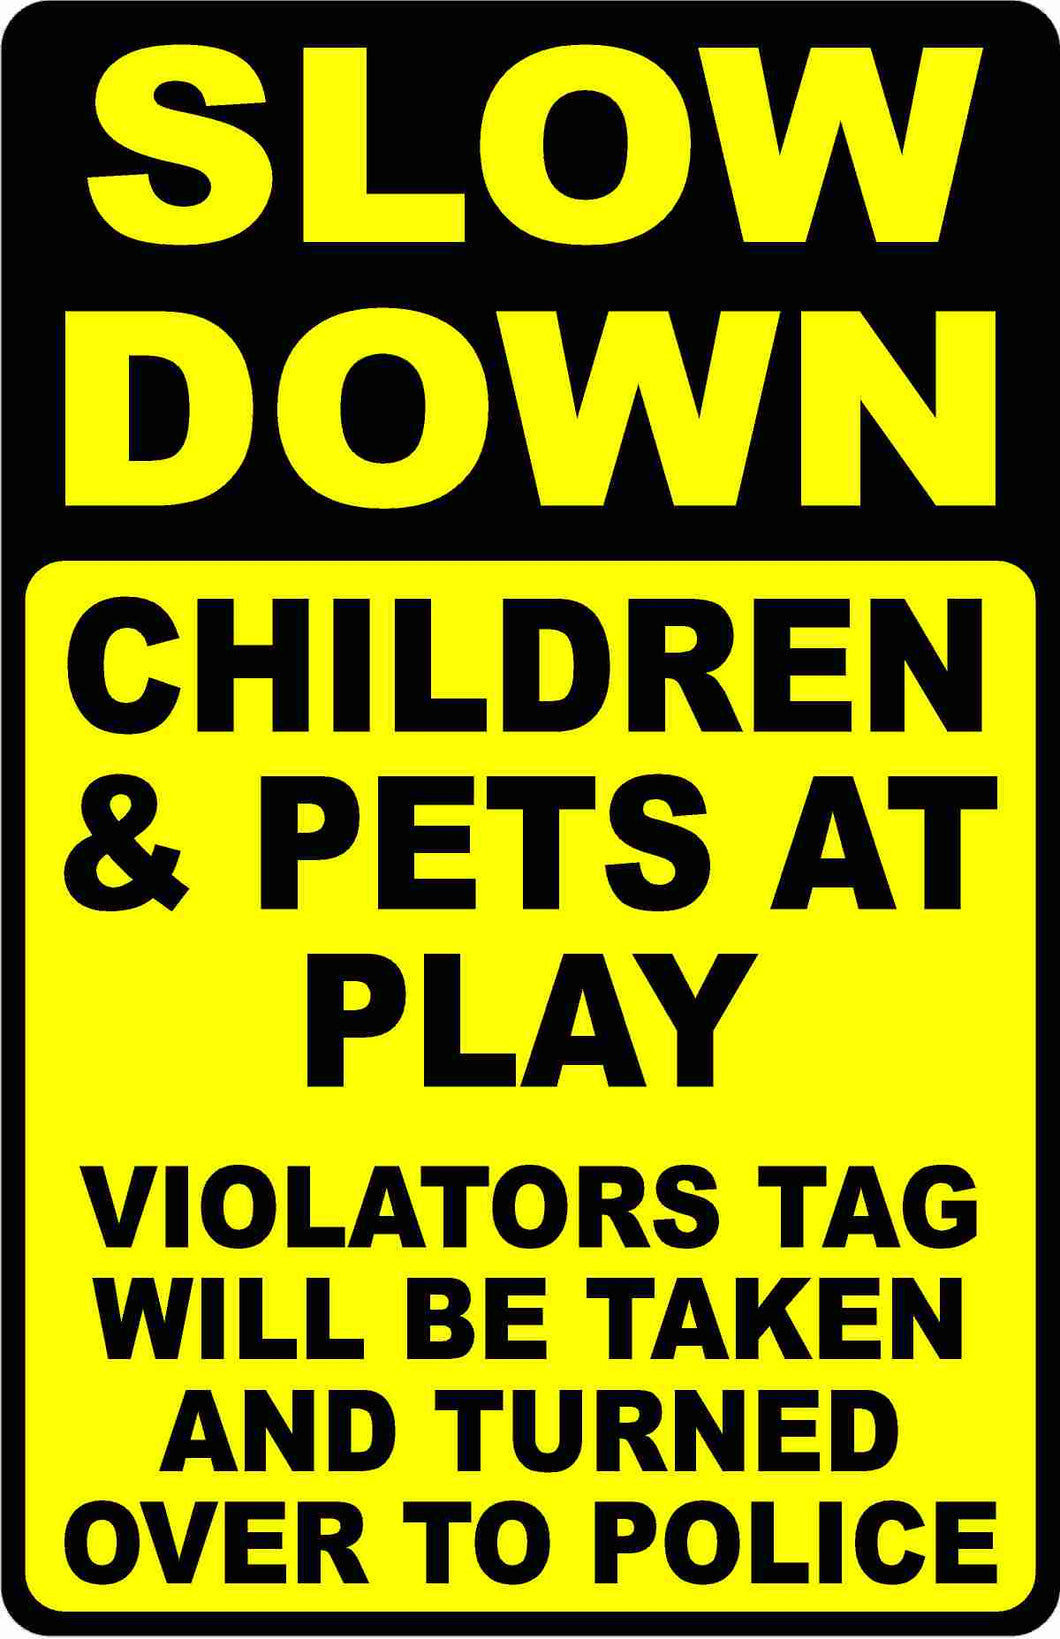 Slow Down Children & Pets at Play Violators Tag Given to Police Sign